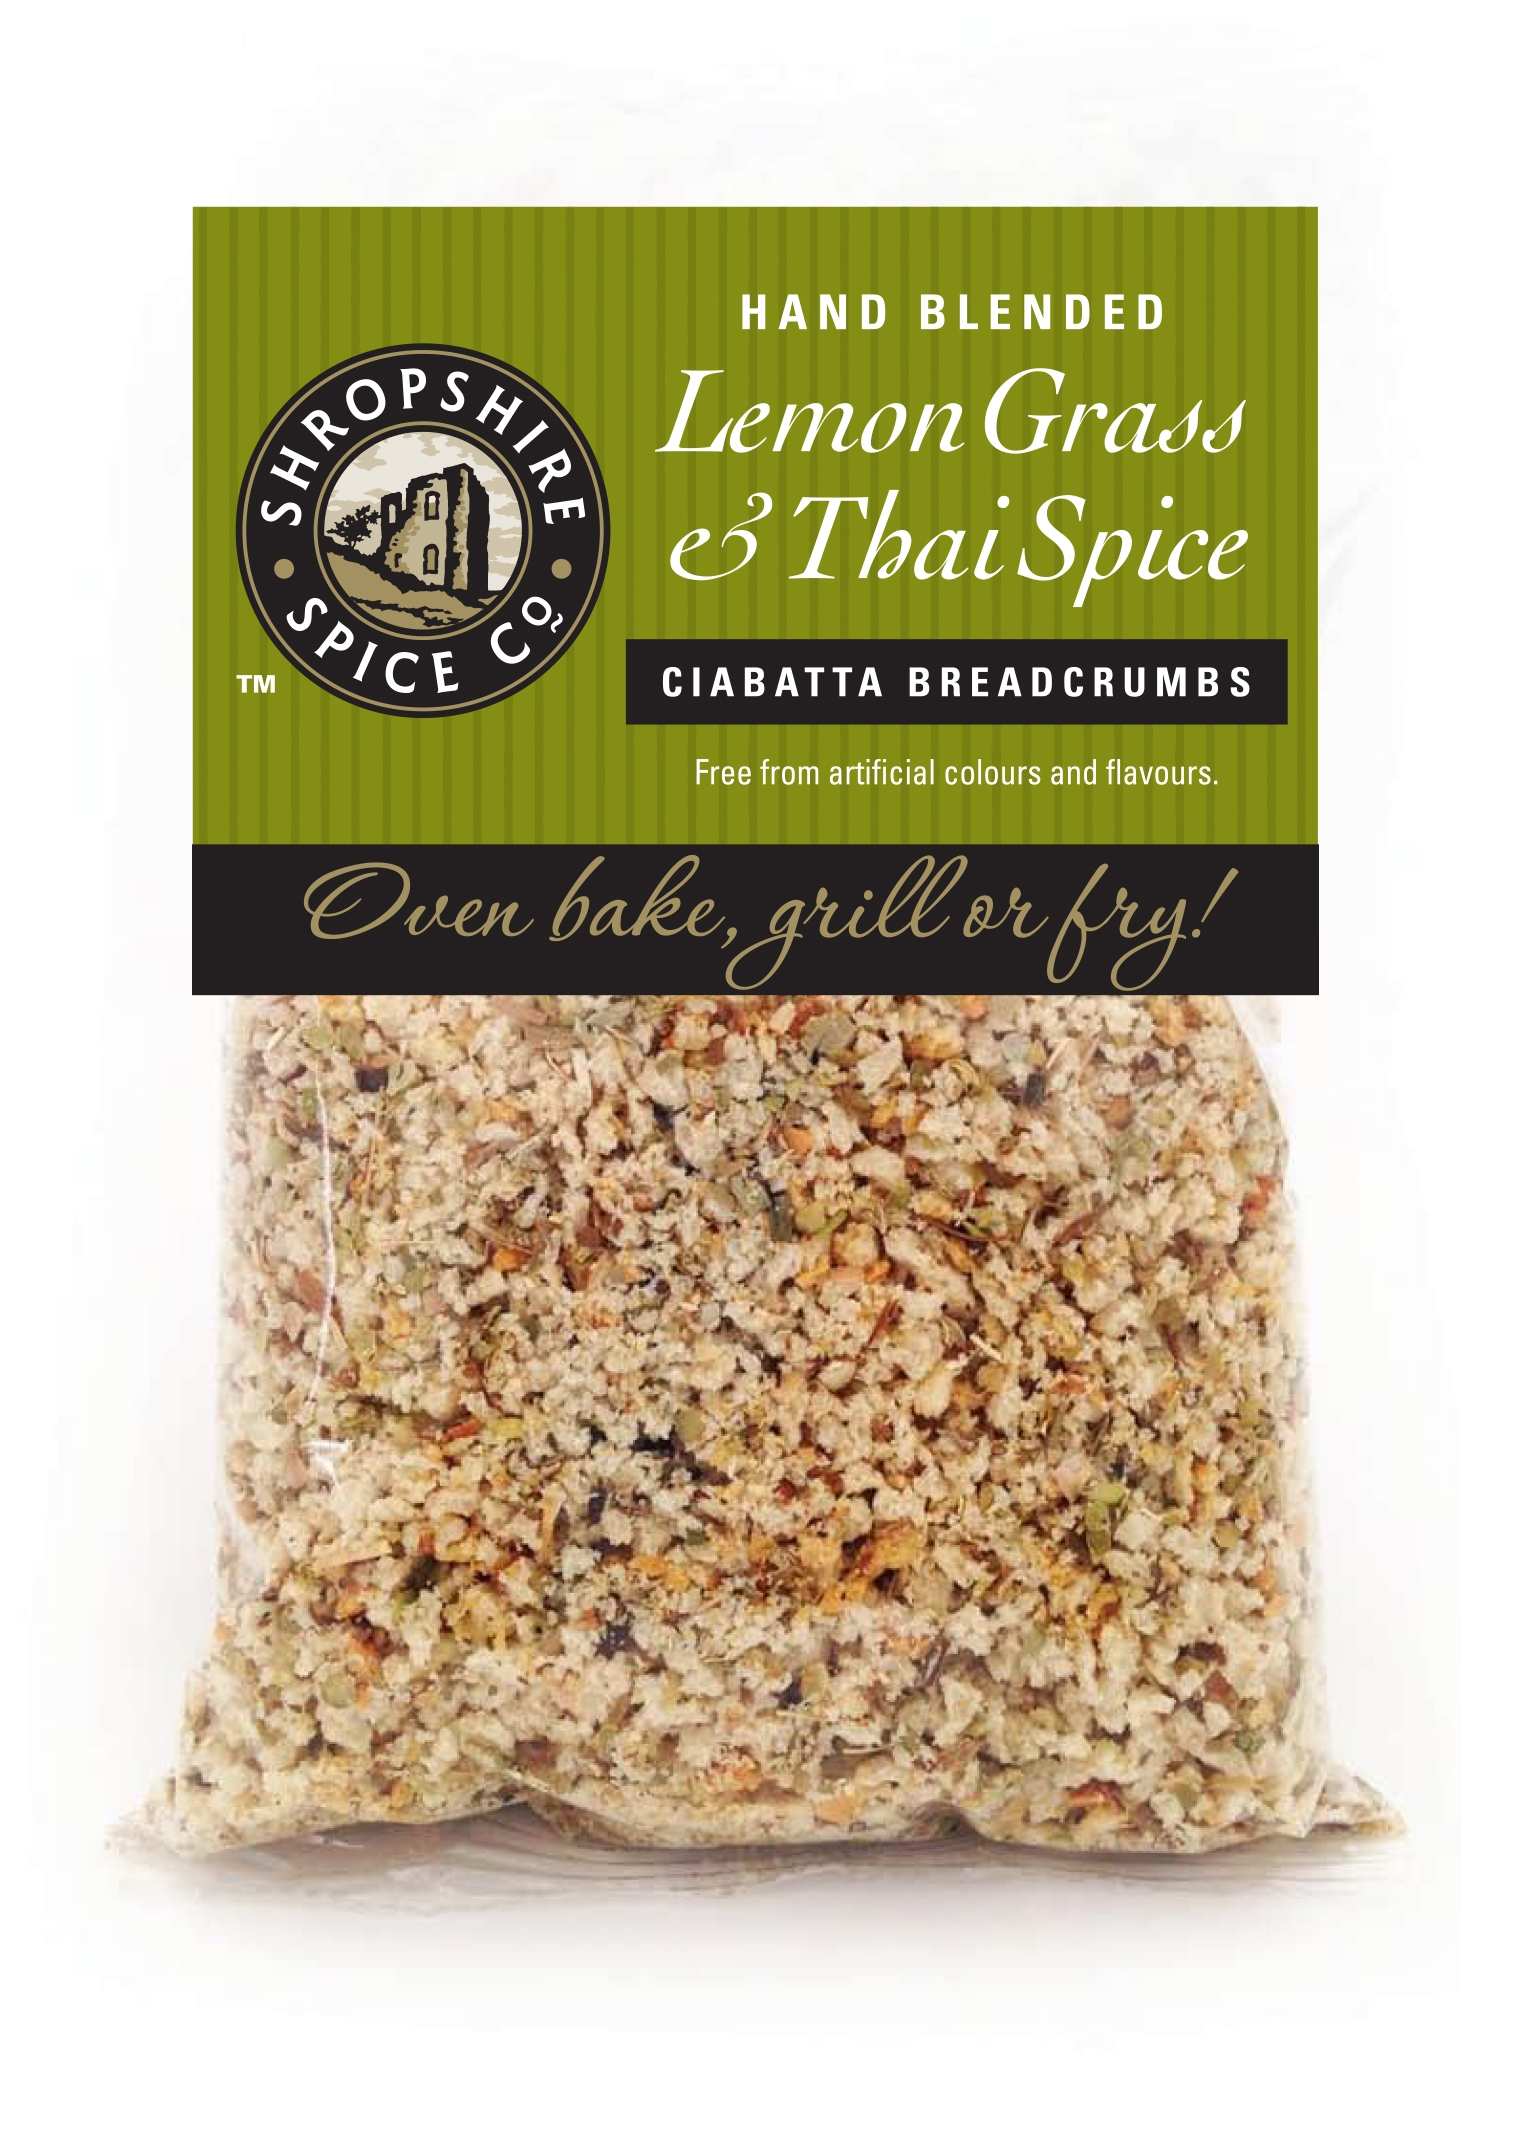 Lemon Grass & Thai Spice ciabatta breadcrumbs